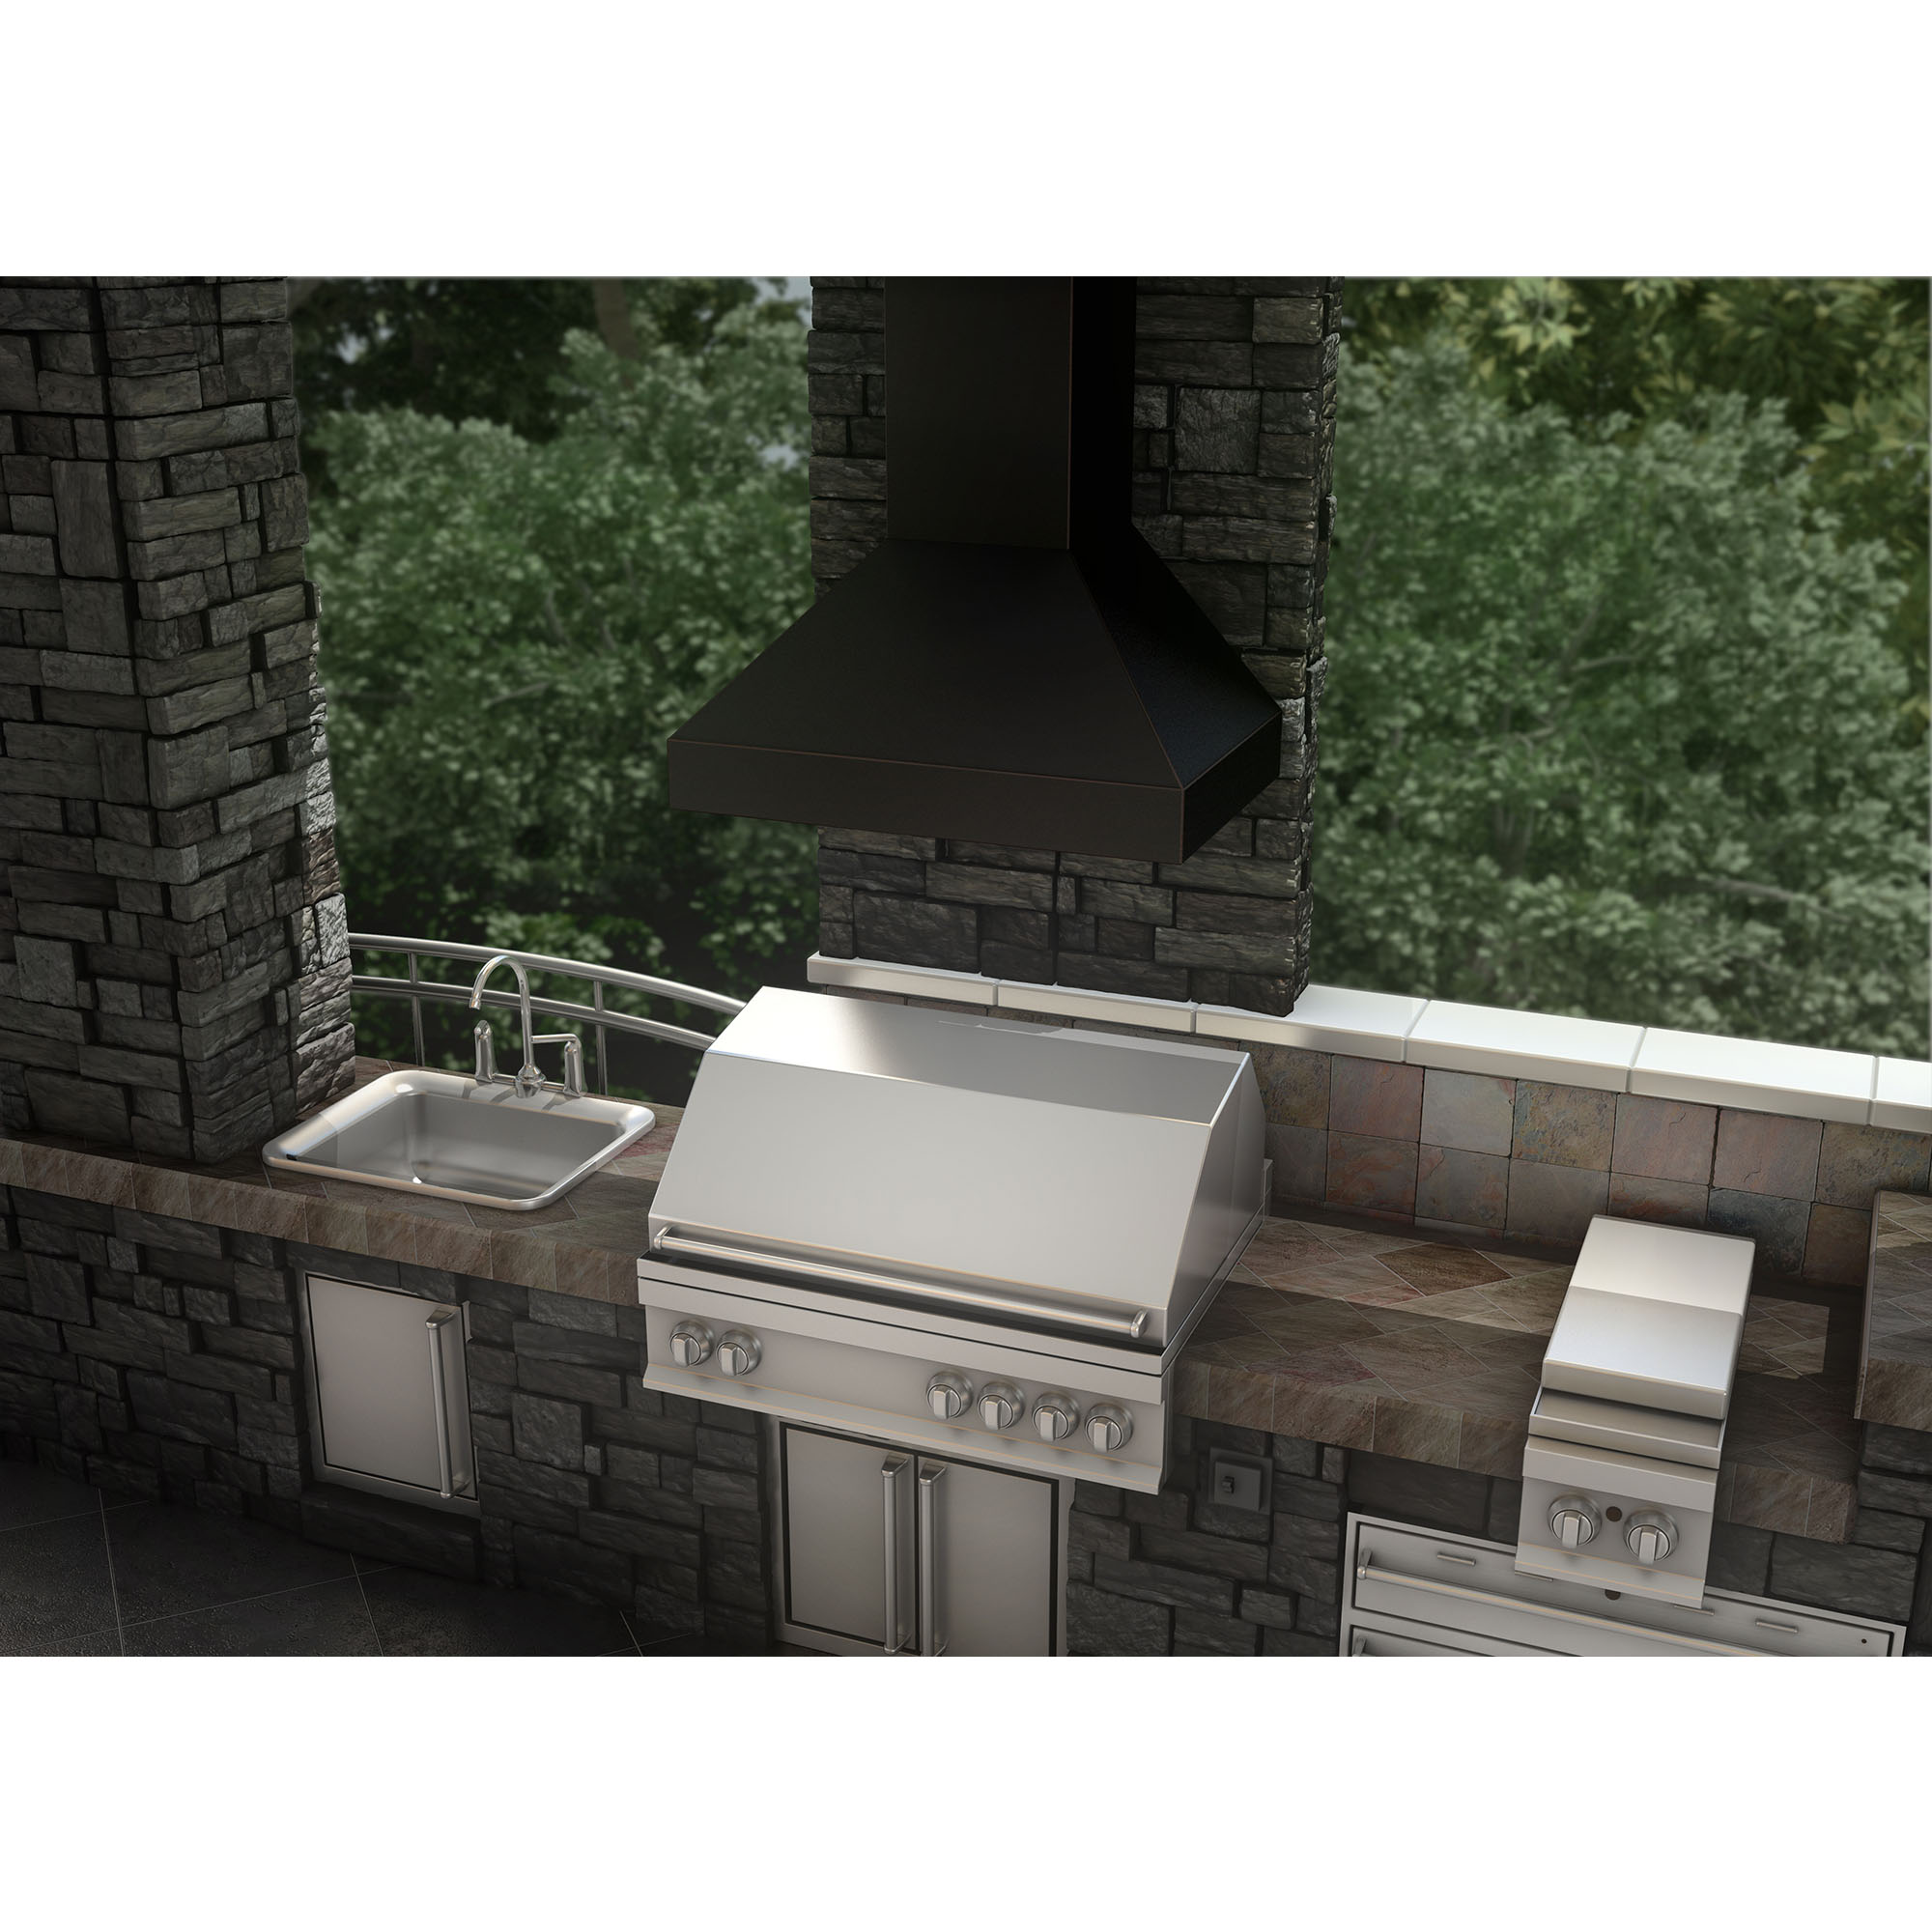 8667B_New_Outdoor_Kitchen_Wall_Hoods_Cam_02.jpg